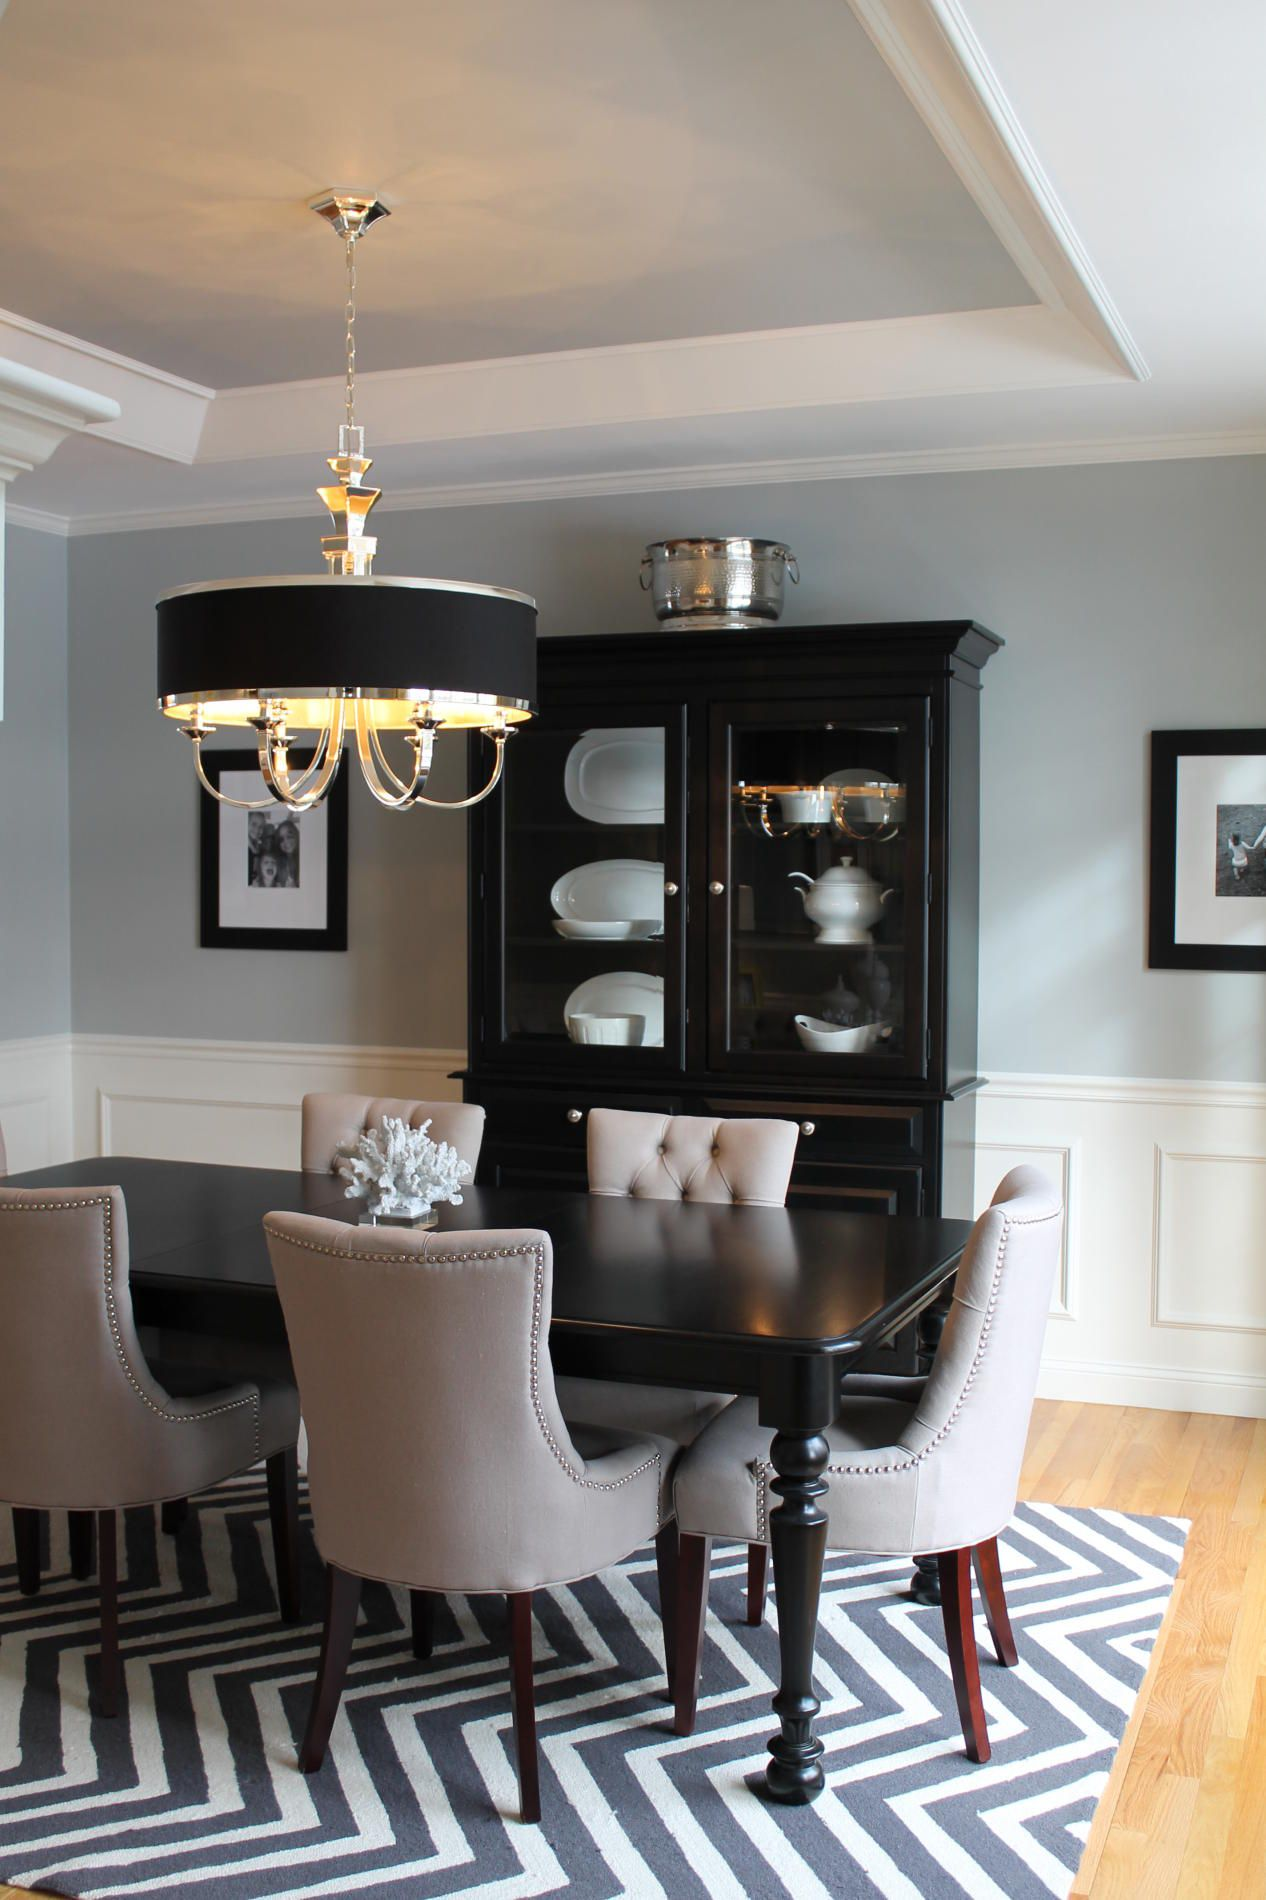 Pale Blue Dining Room Walls And Ceiling With White Wainscoting Black Accents